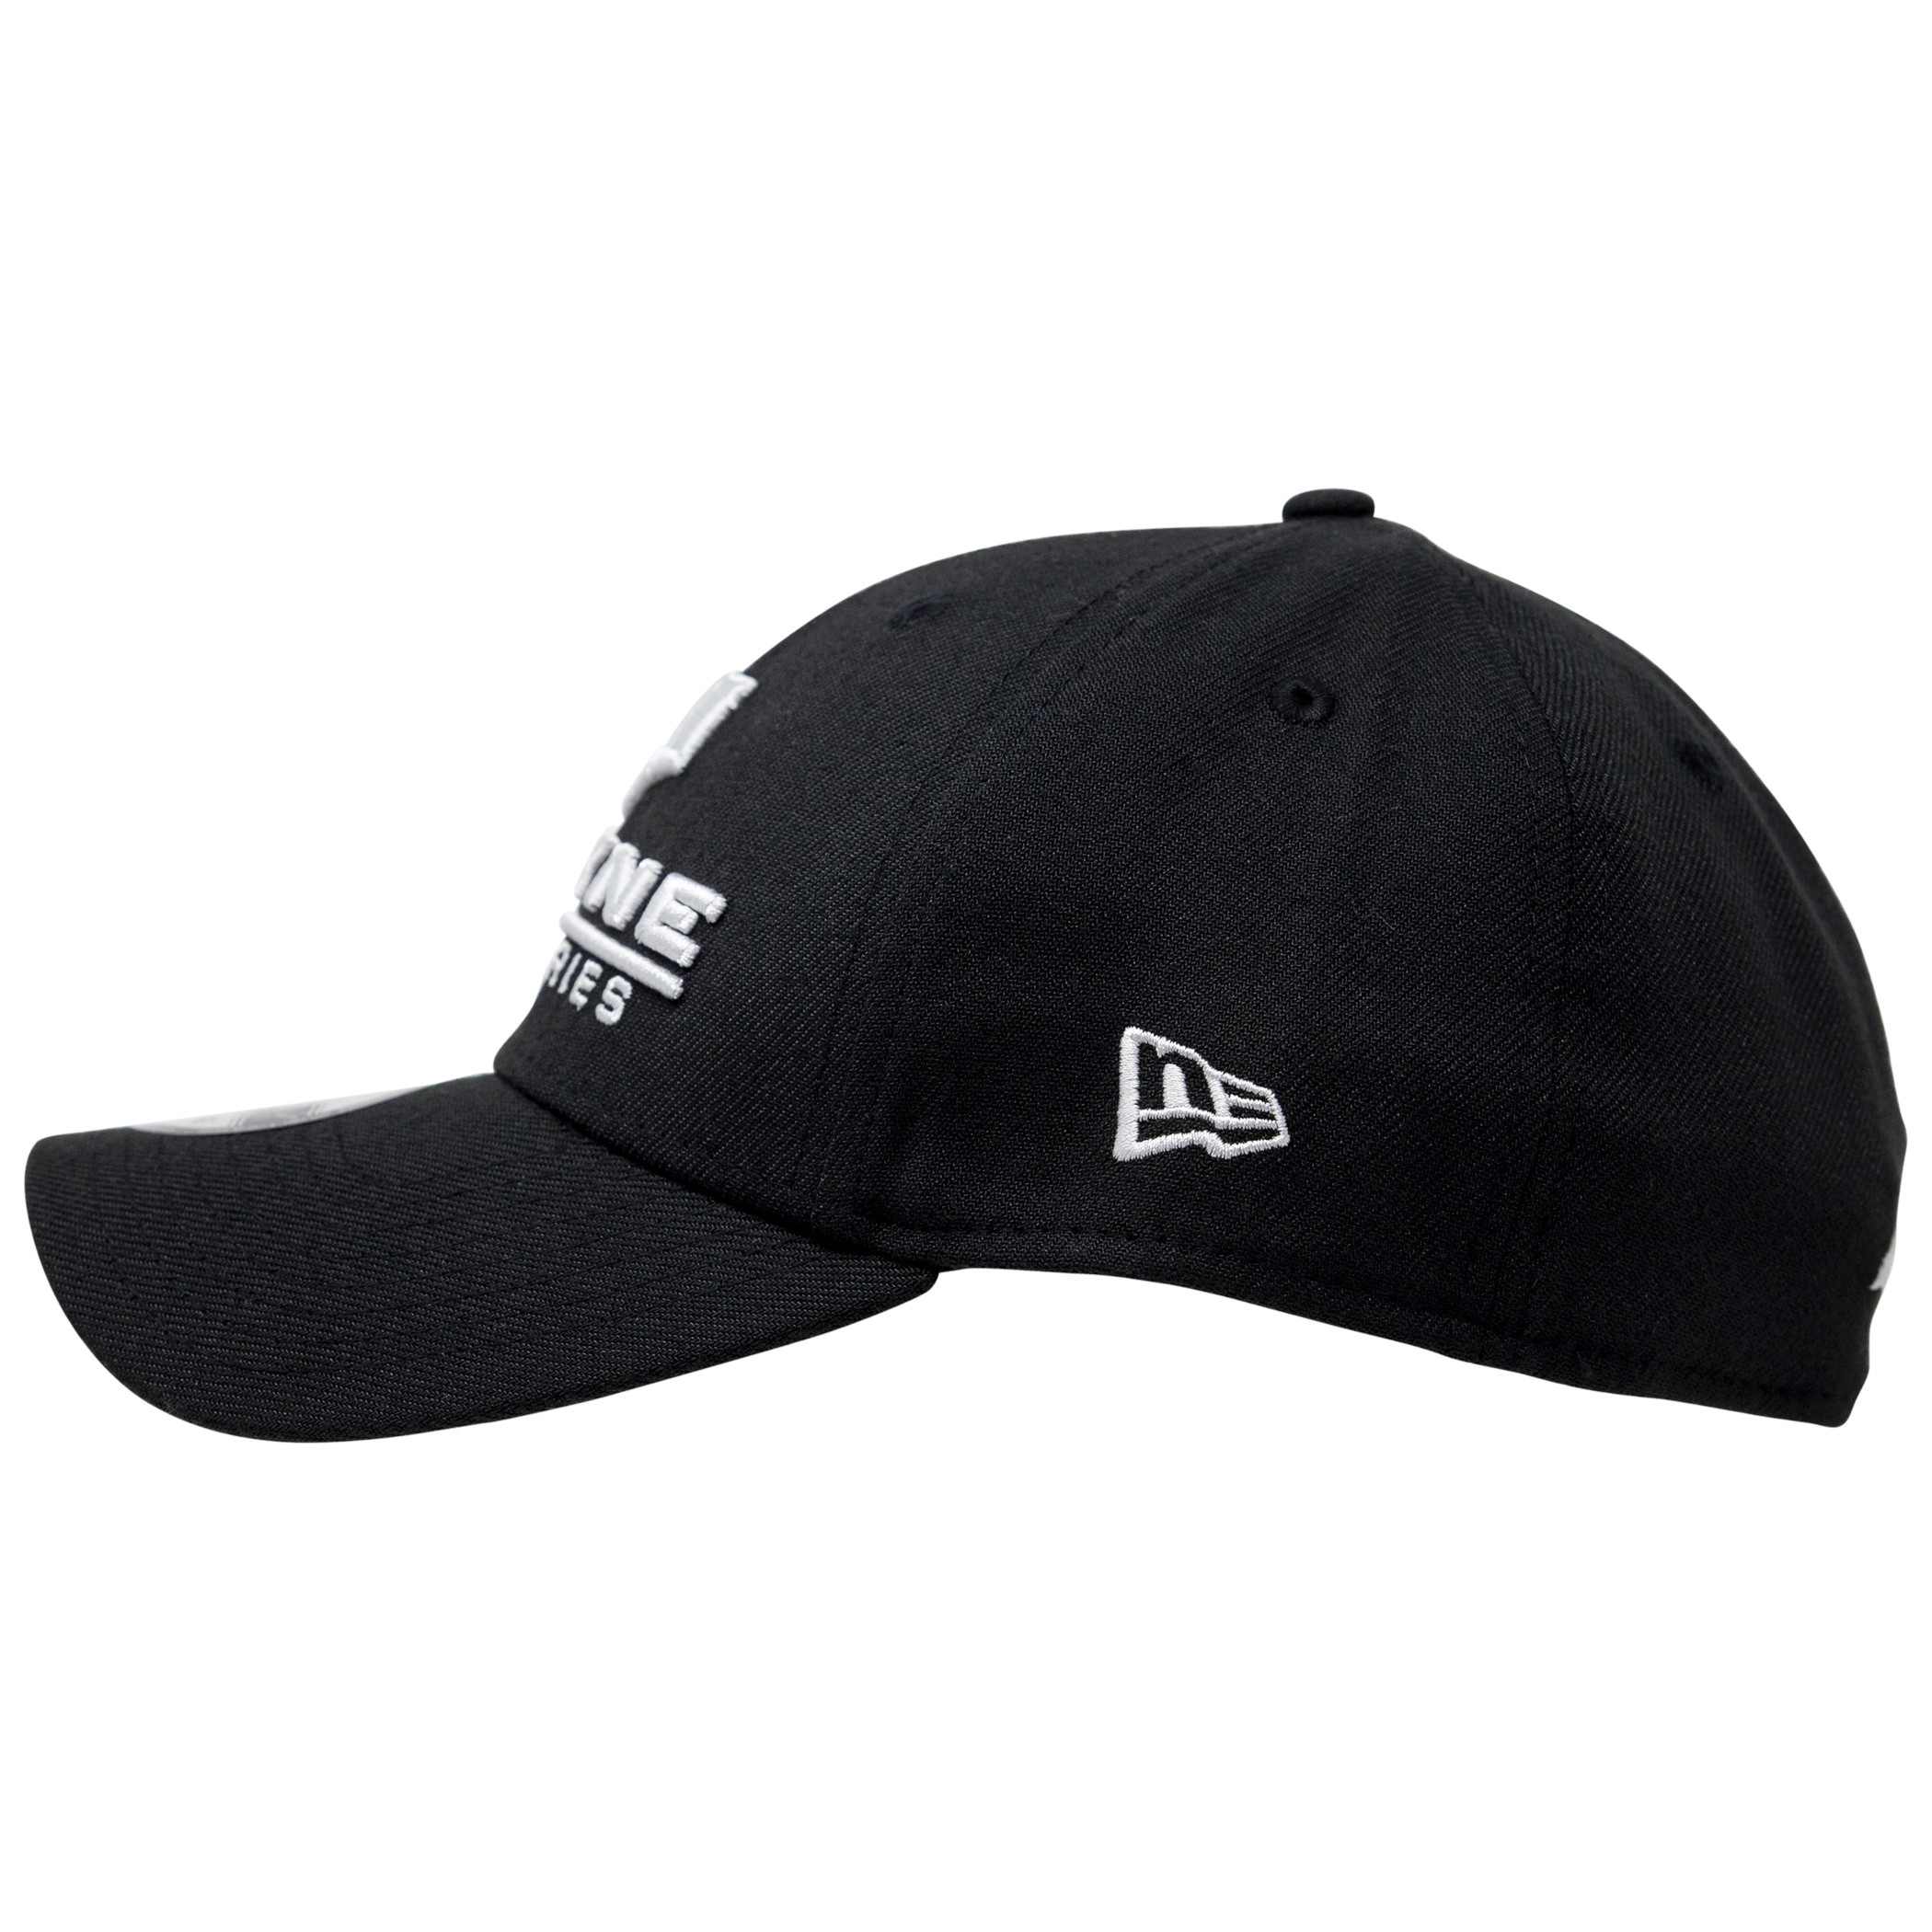 Batman Wayne Industries New Era 39Thirty Fitted Hat